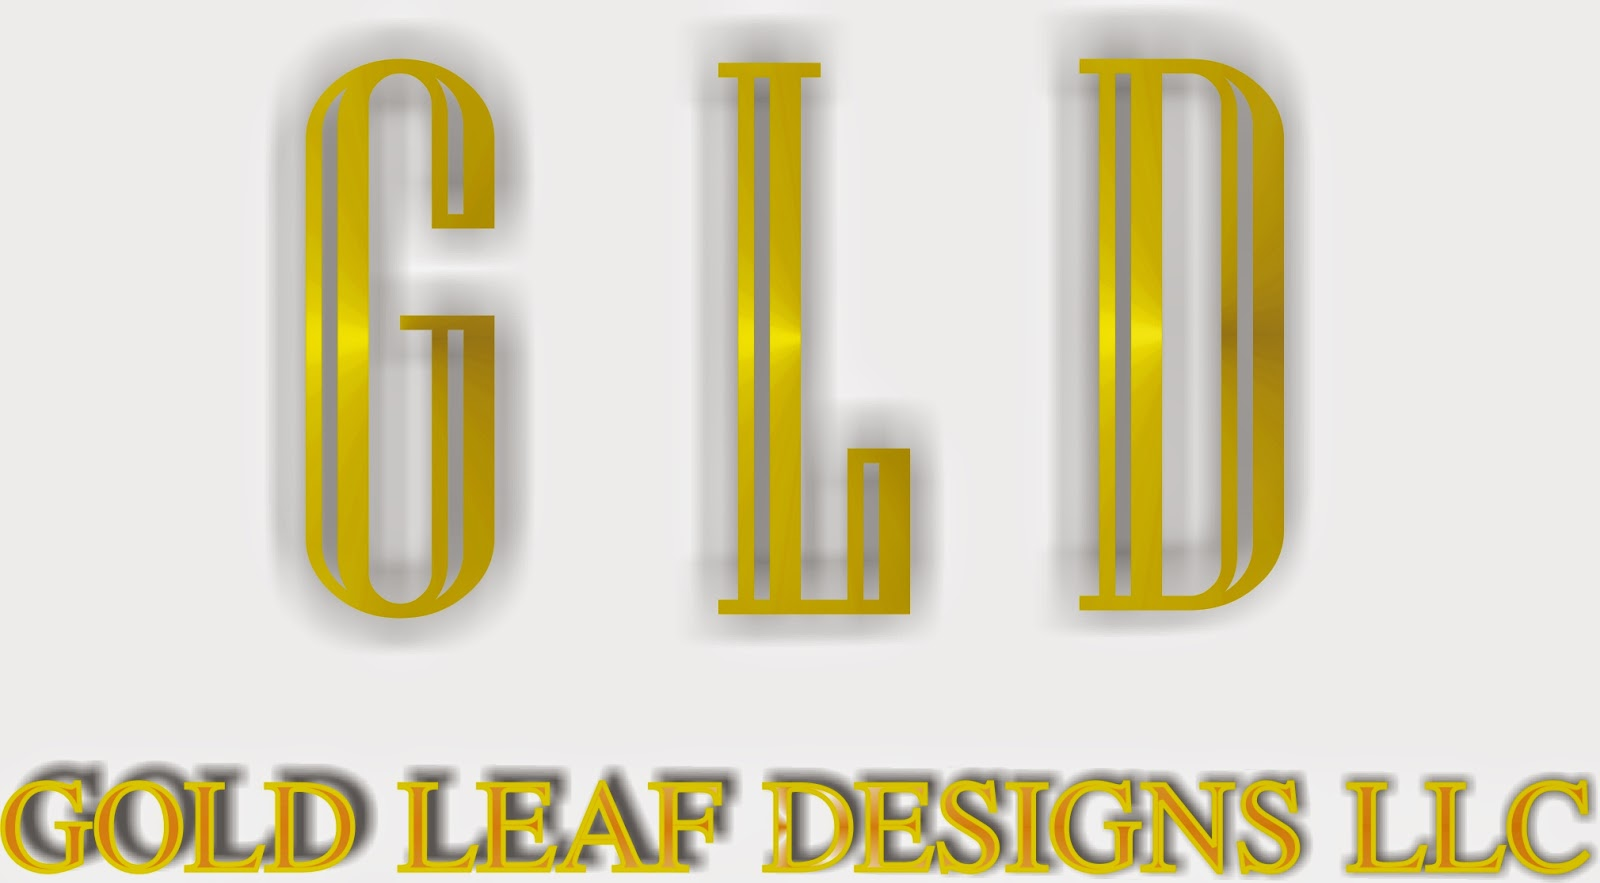 gold leaf designs llc, graphic design studio, michigan graphic design